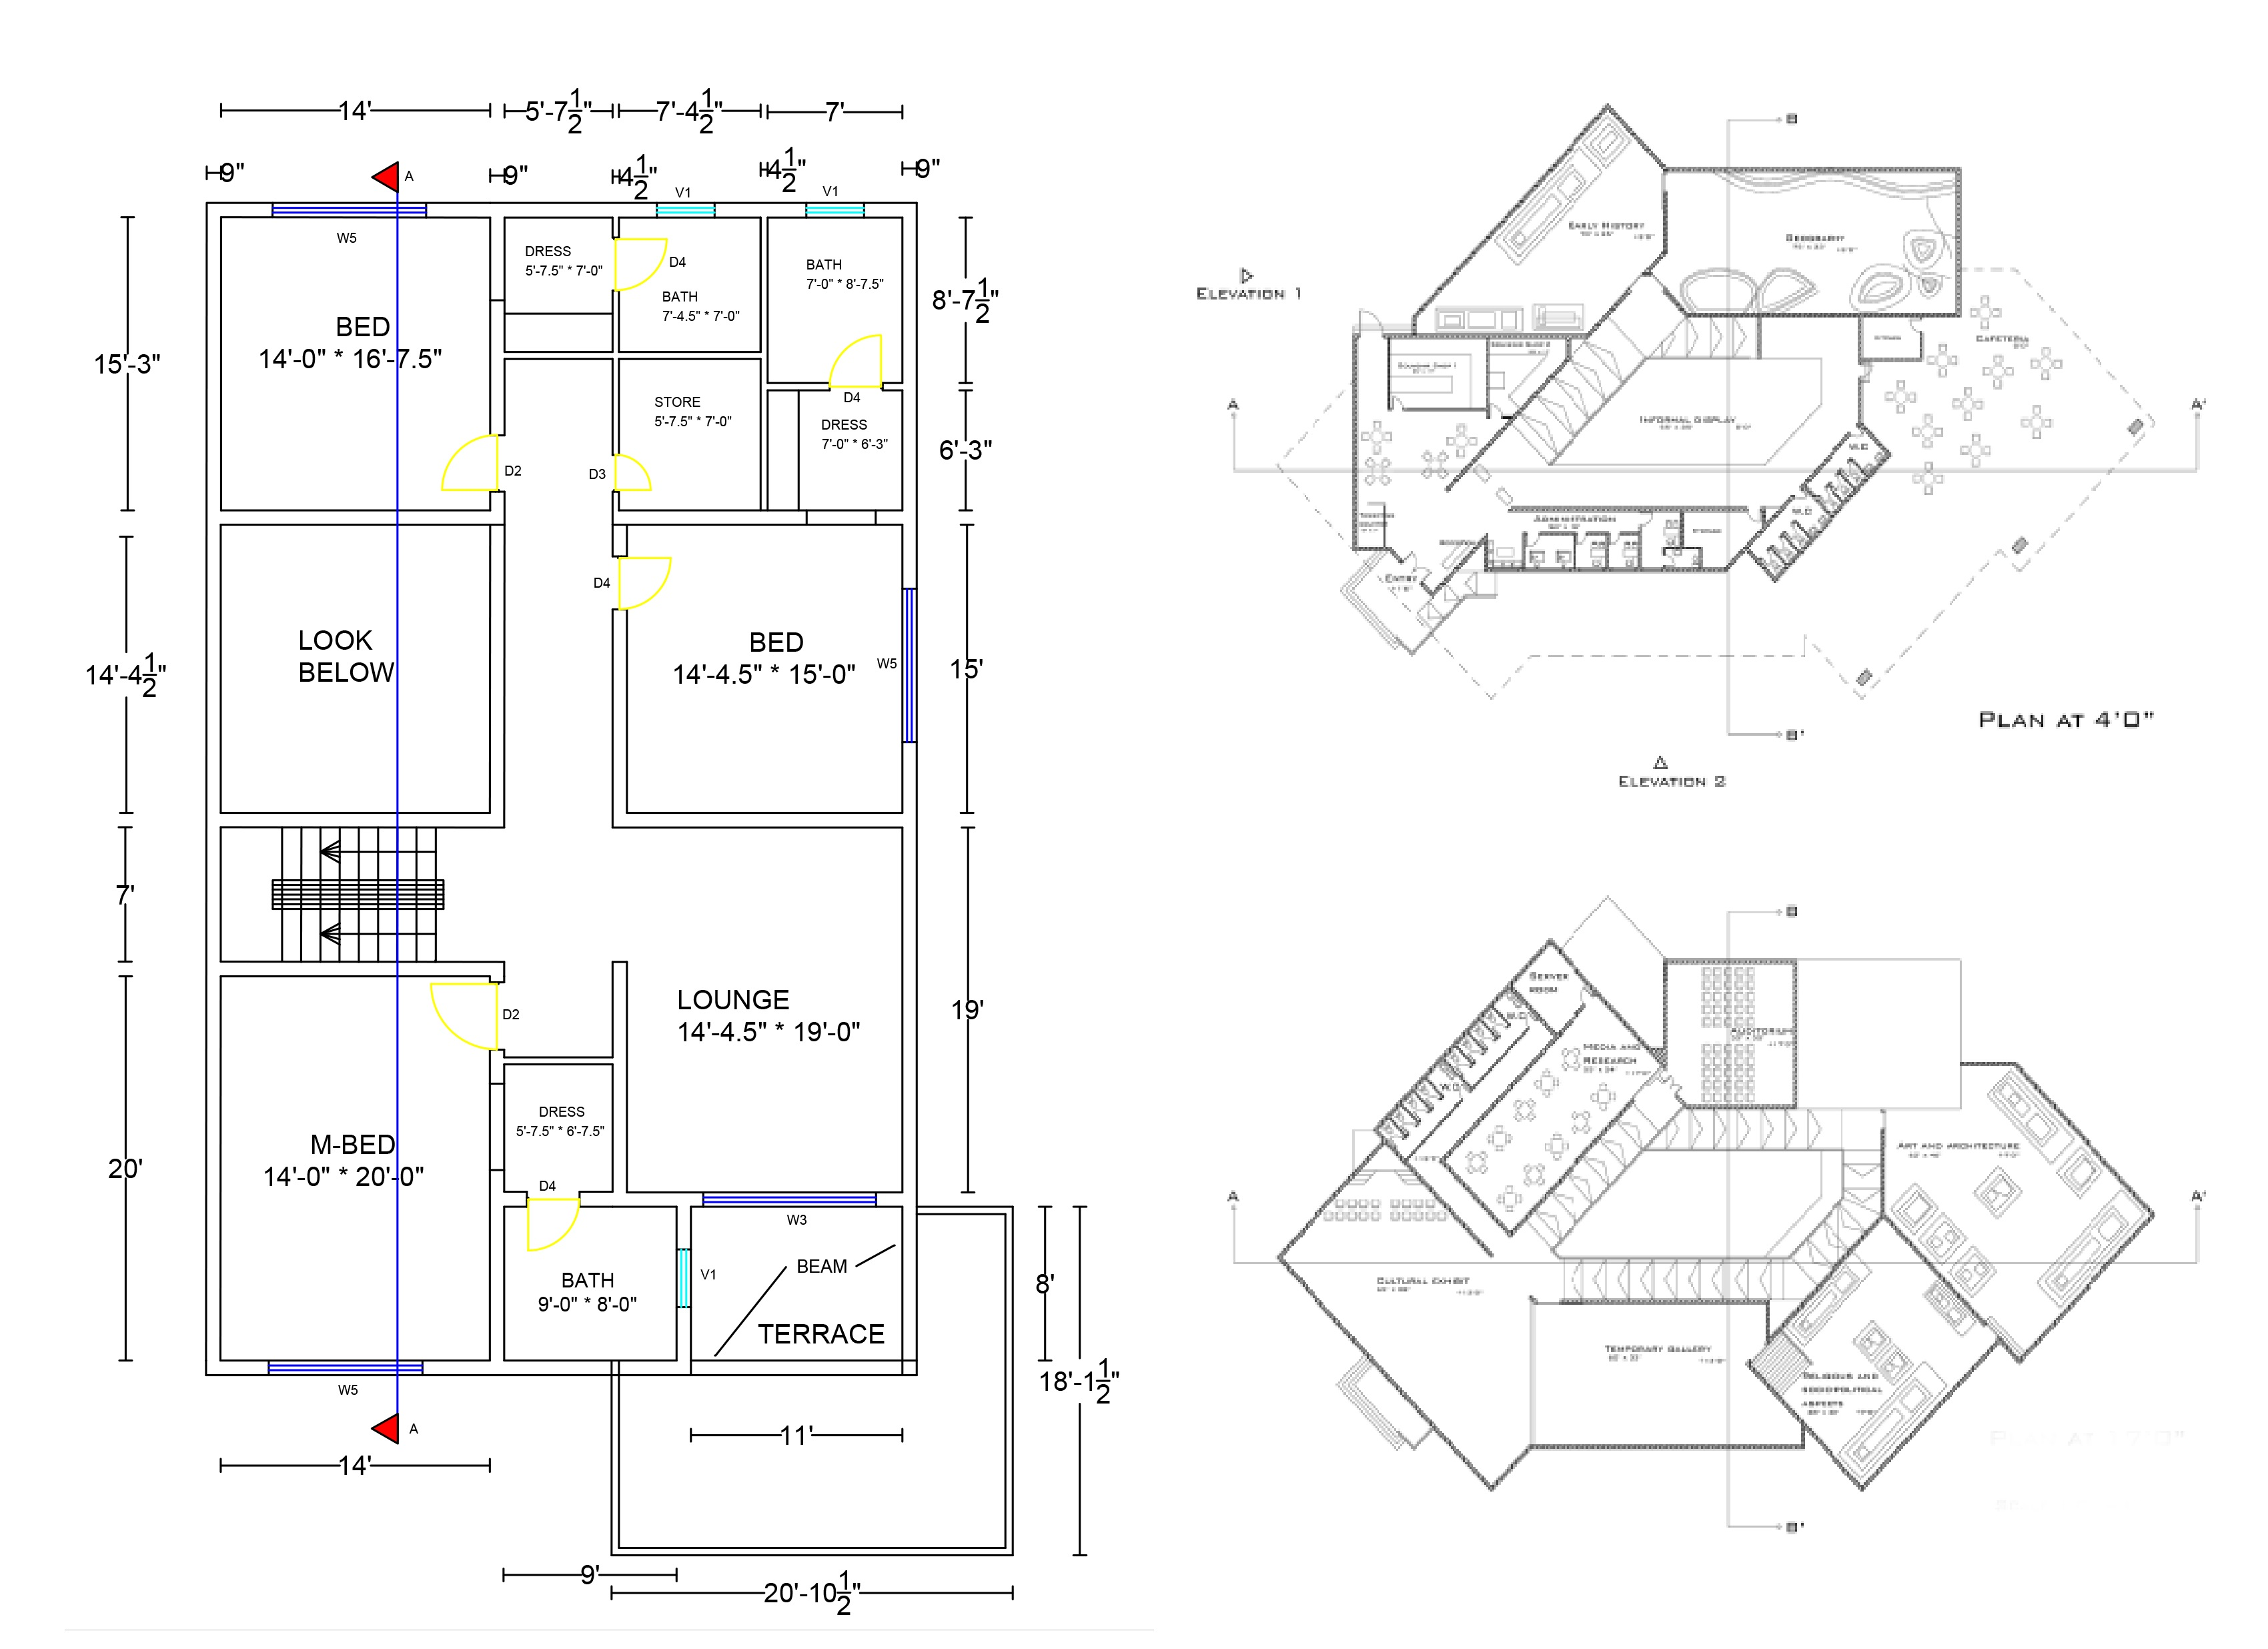 Architecture Plans, Sections, Blueprints 2D, 3D by AutoCAD and Sketchup